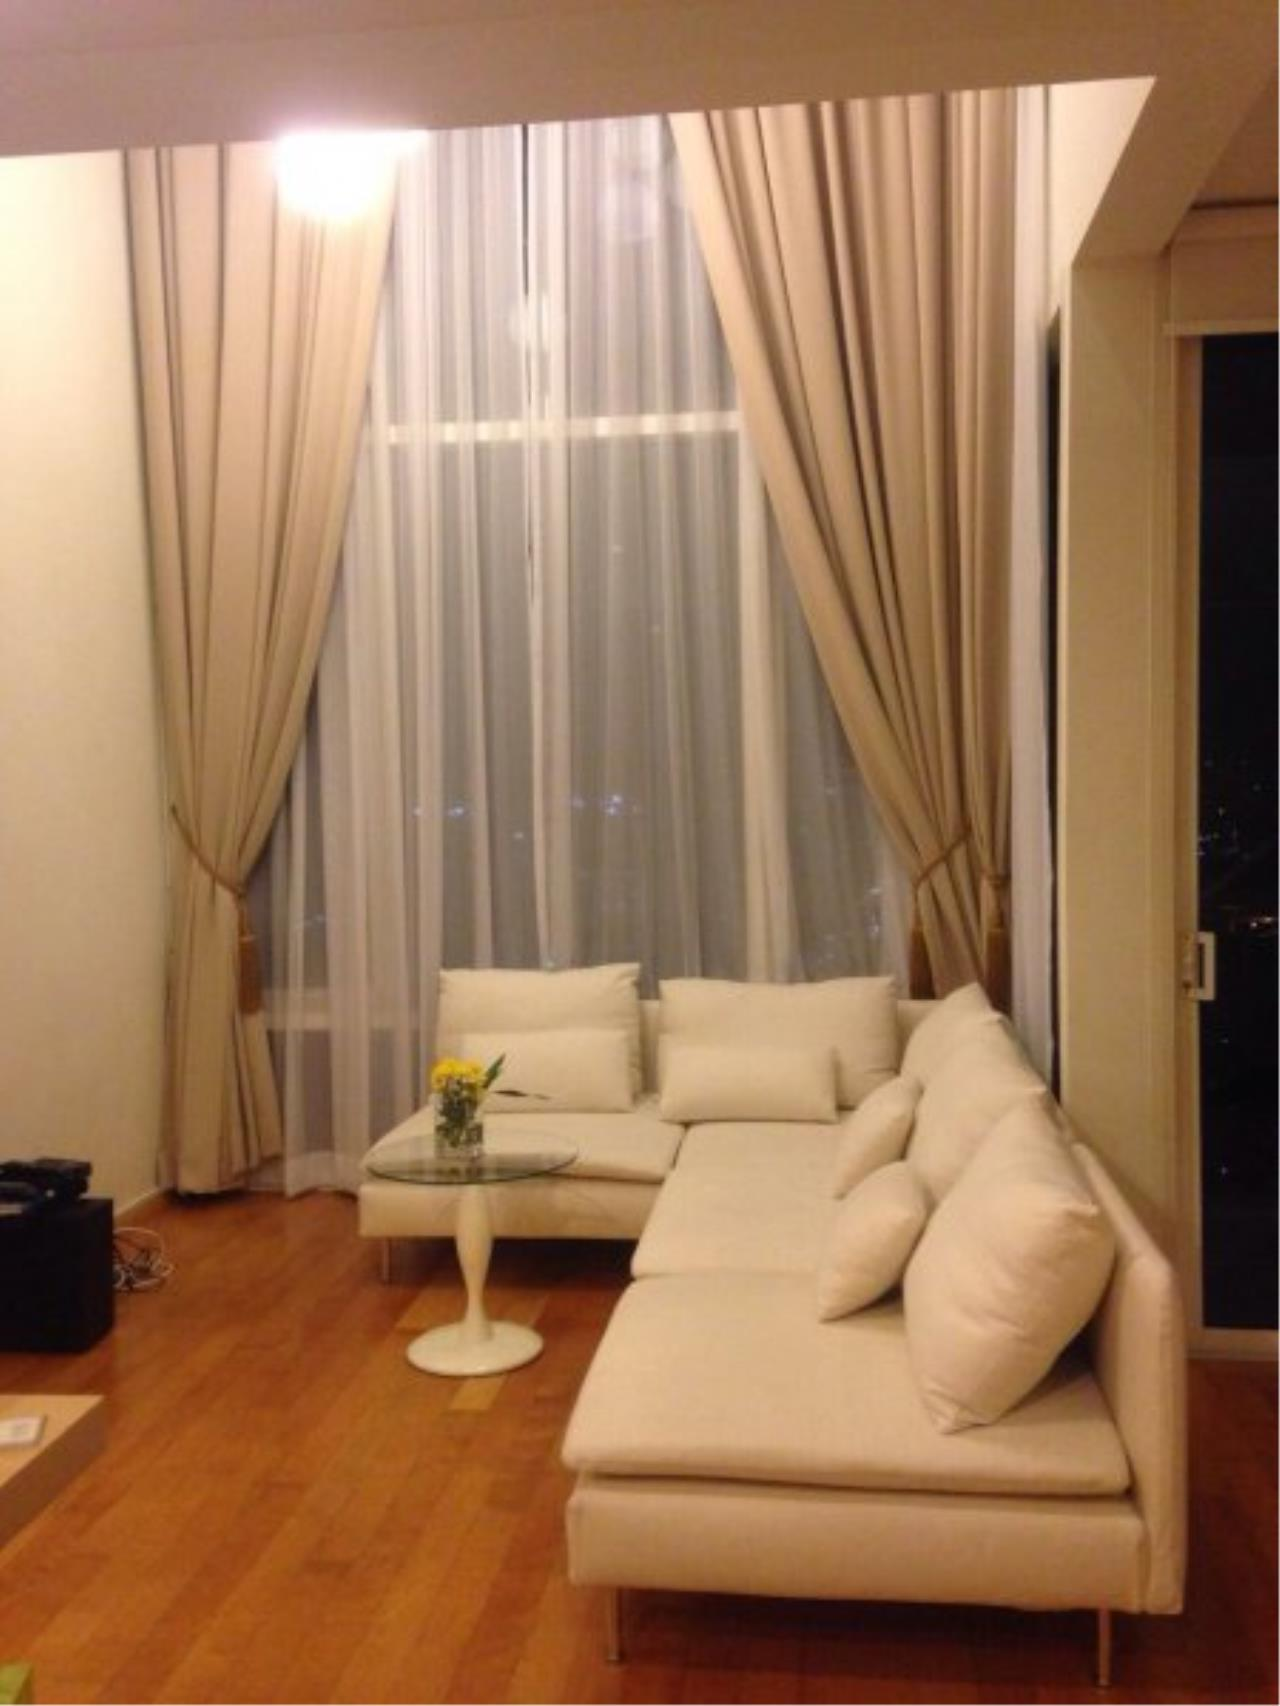 Piri Property Agency's Duplex 1 Bedroom in the Villa Ratchatewi Condo for rent on high floor 2